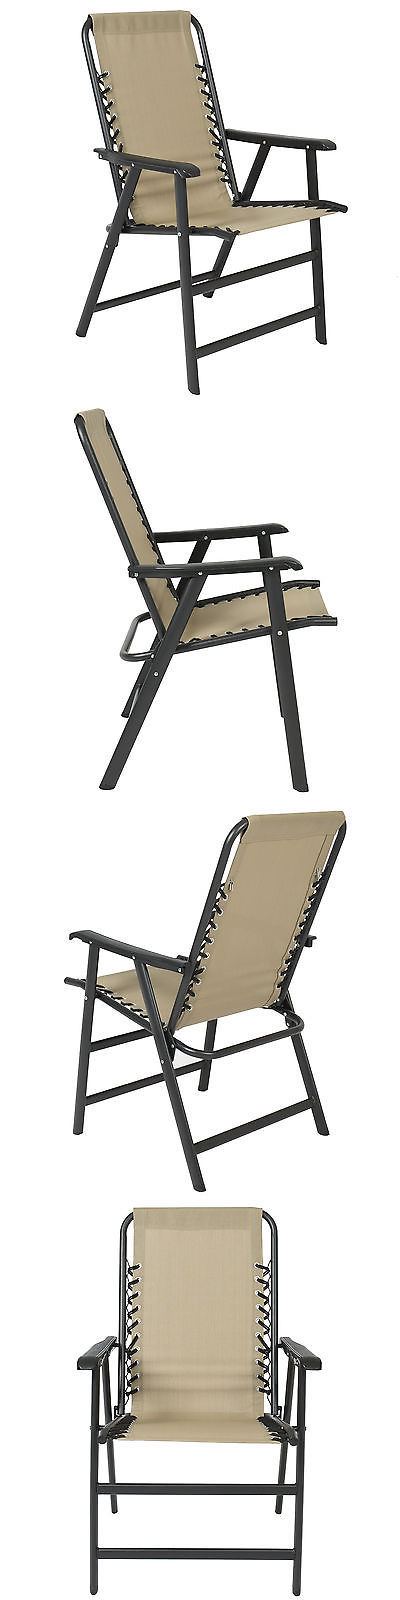 Chairs 79682: Best Choice Products Patio Lounge Suspension Folding Chair  Outdoor Sport Beige  U003e